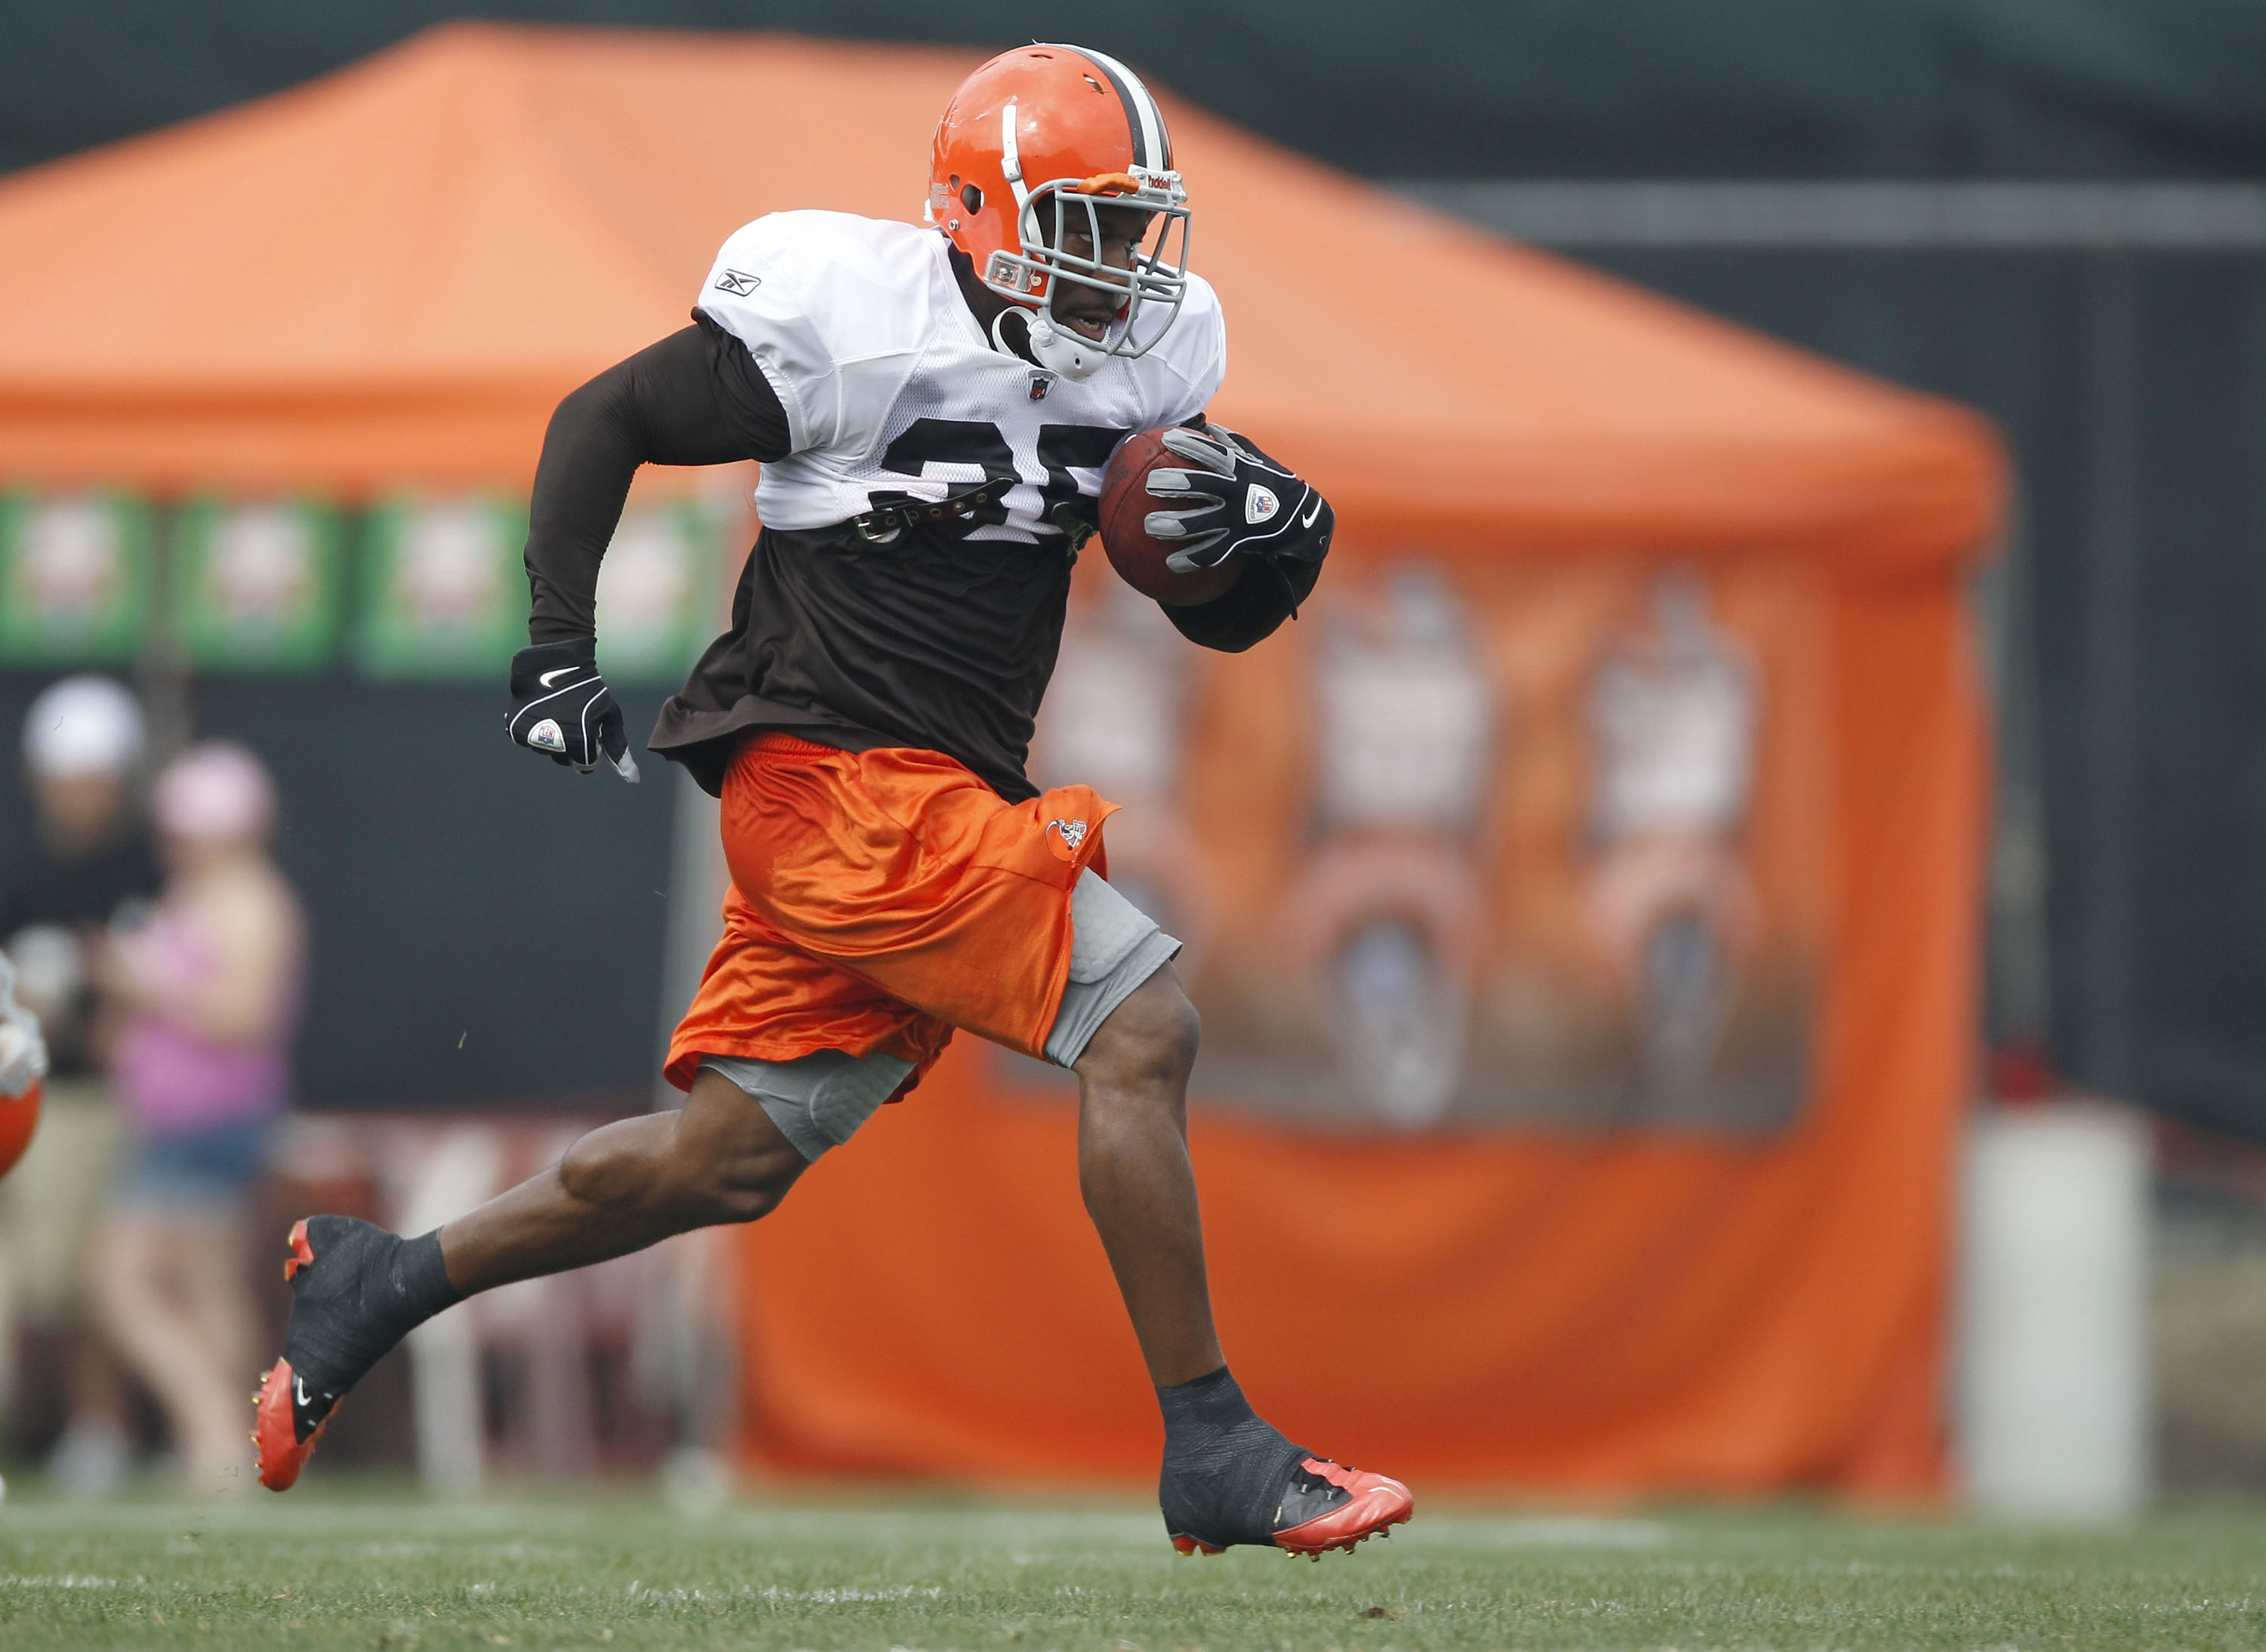 BEREA, OH - AUGUST 04:  Jerome Harrison #35 of the Cleveland Browns runs down field during training camp at the Cleveland Browns Training and Administrative Complex on August 4, 2010 in Berea, Ohio.  (Photo by Gregory Shamus/Getty Images)